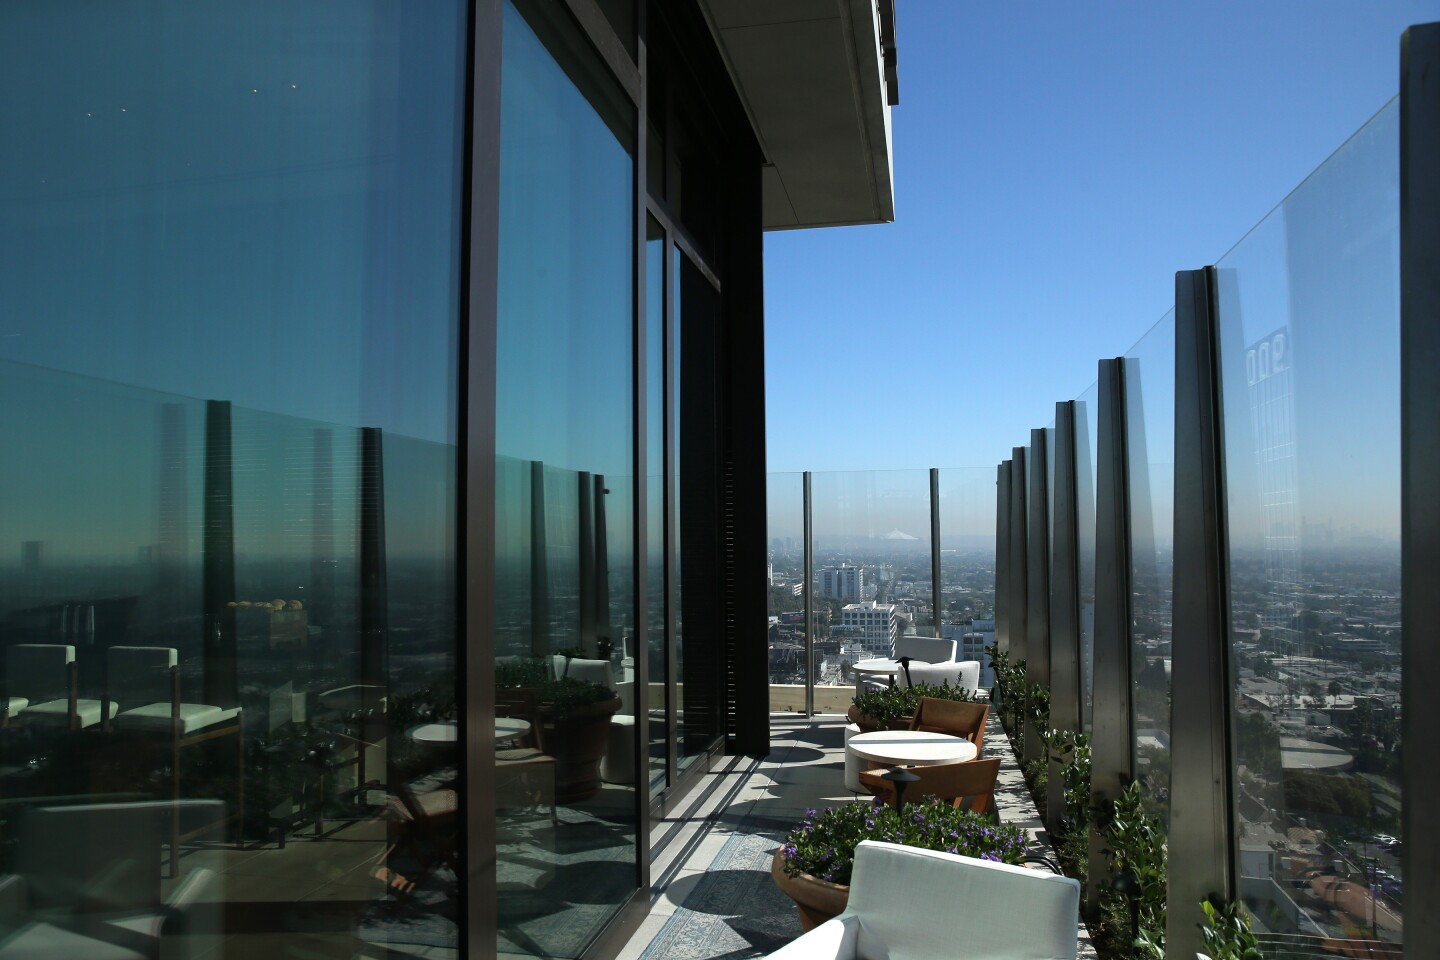 View from The Roof, a rooftop bat at the new Edition Hotel in West Hollywood.